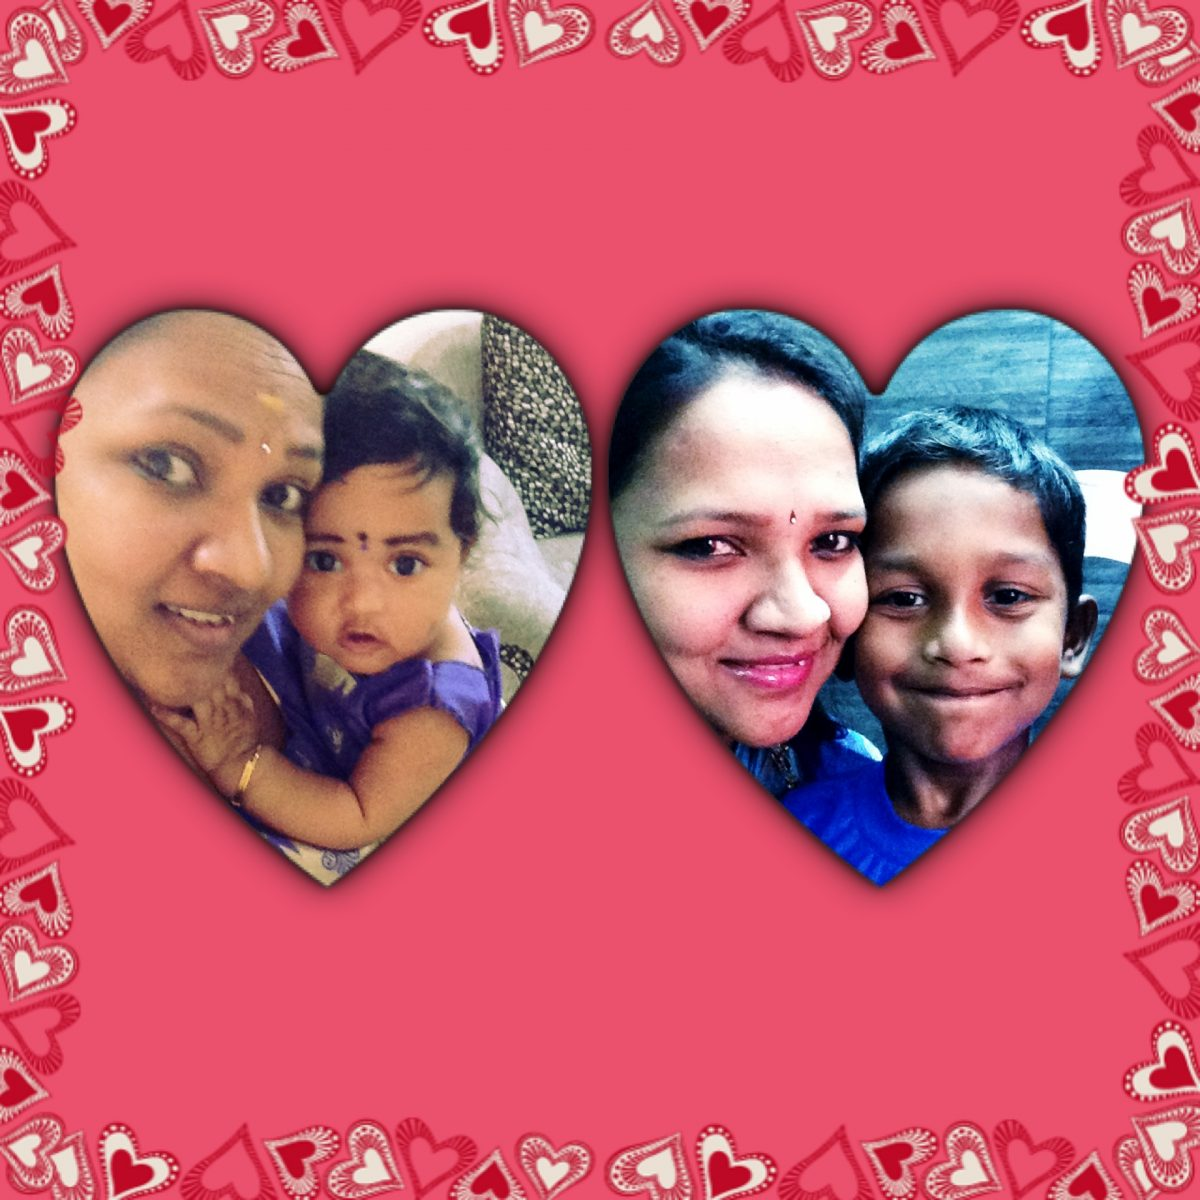 The mother with 2 hearts